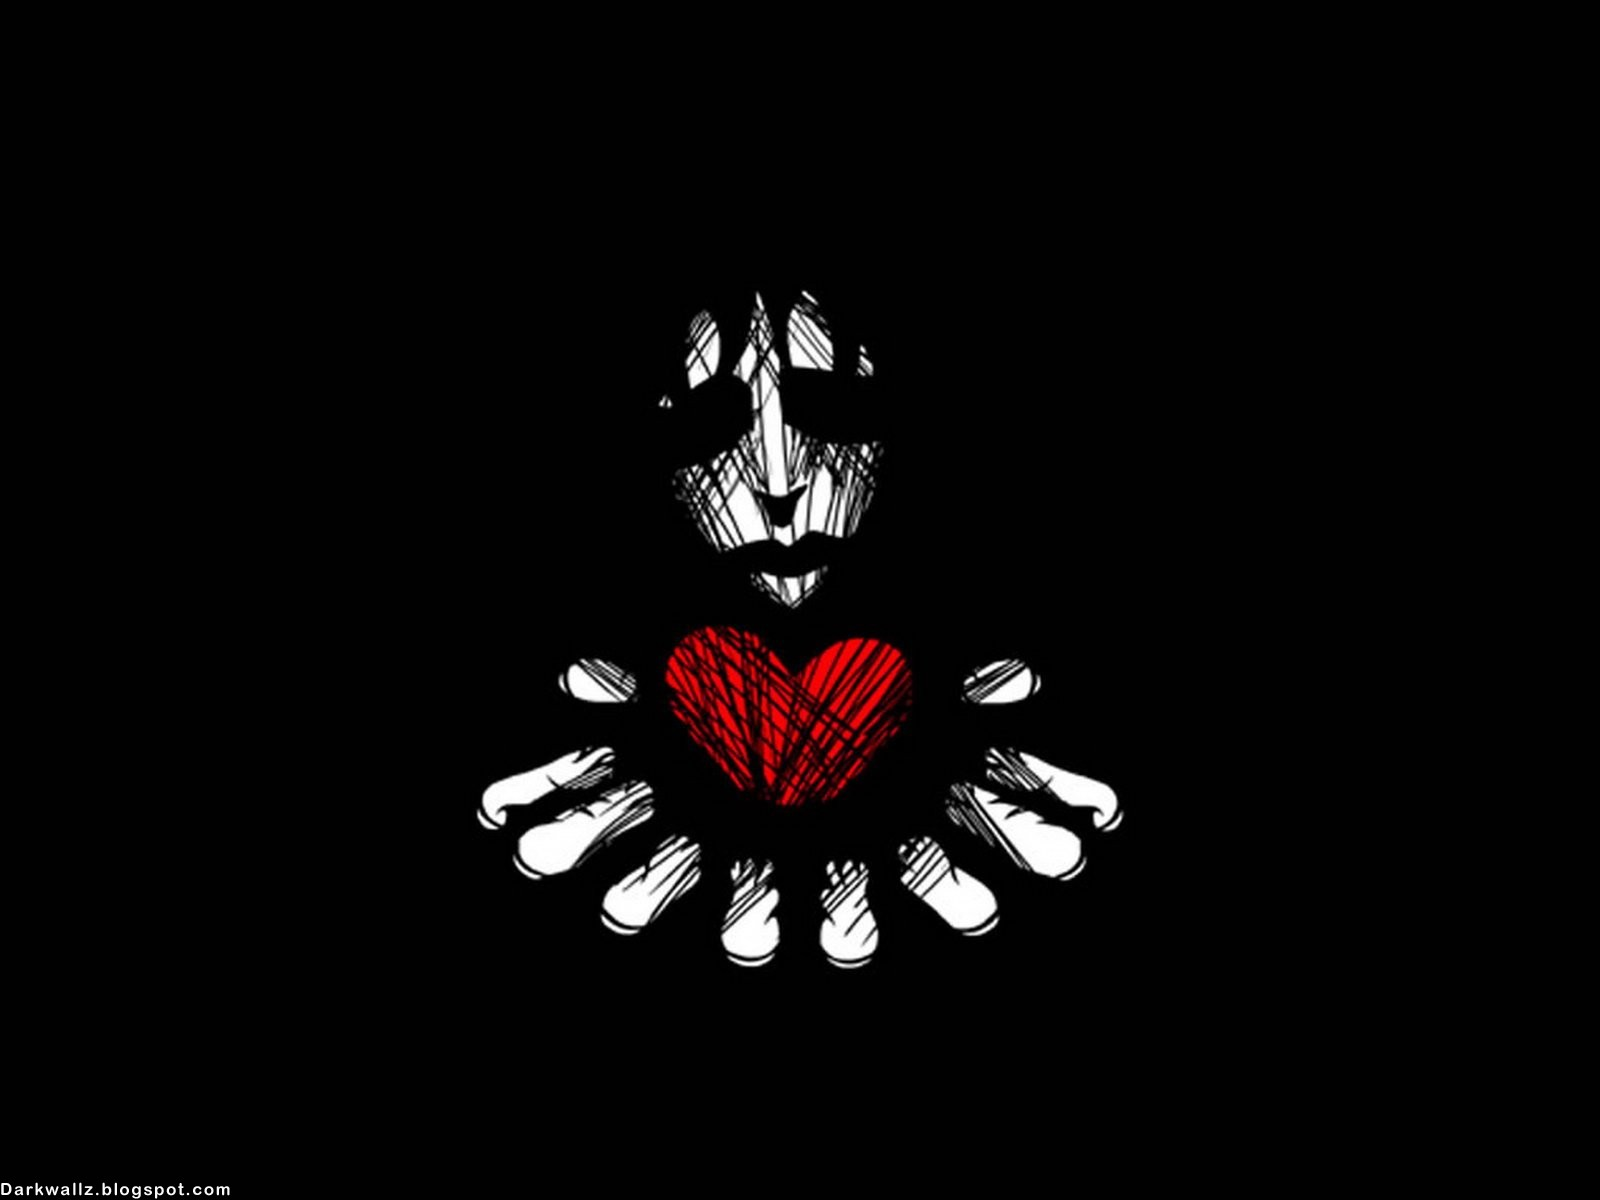 Emo Wallpapers 27 Dark Wallpapers High Quality Black Gothic FREE 1600x1200